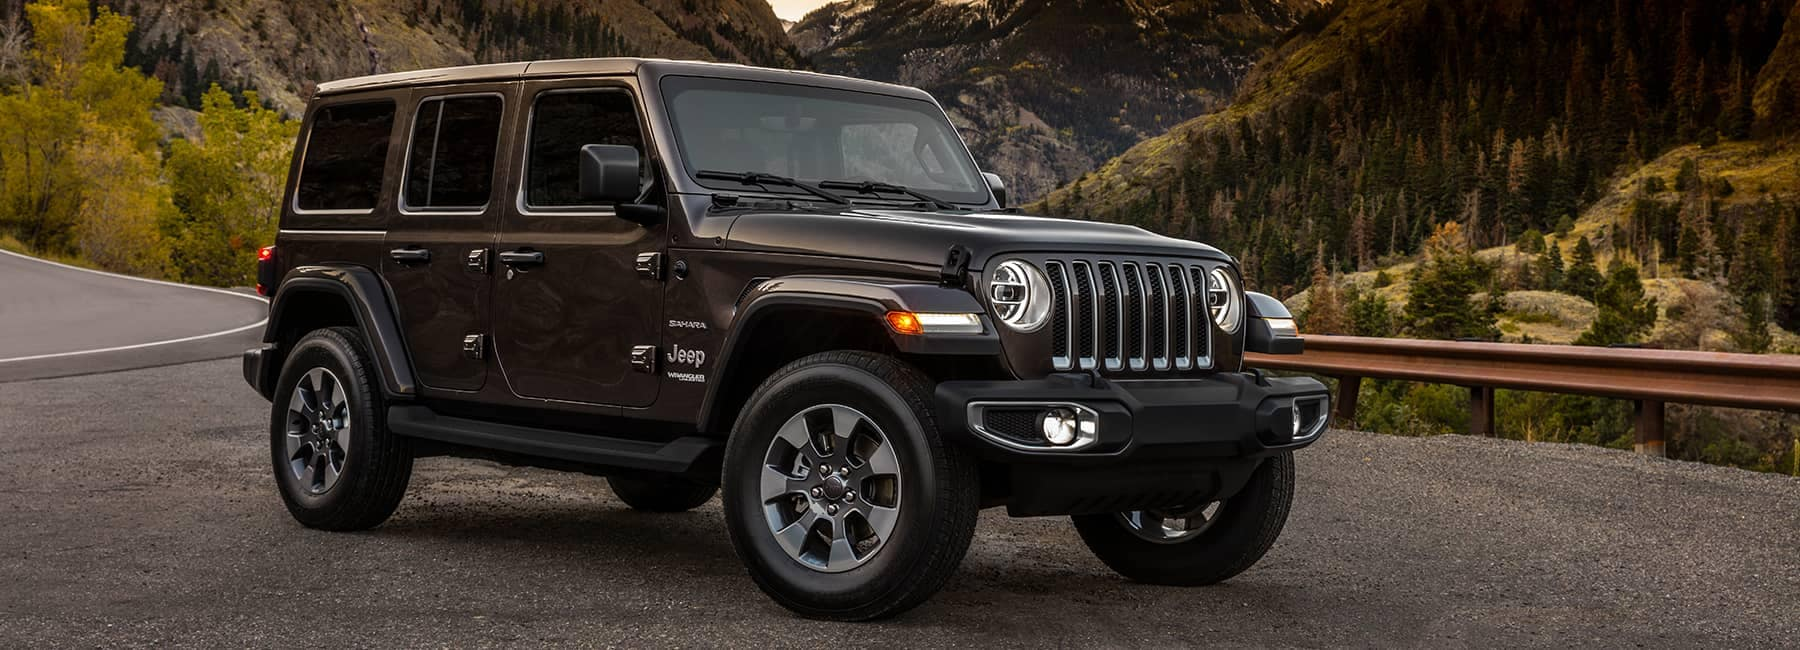 Perfect Jeep Wrangler Trim Levels. 2018 Wrangler At Sunset